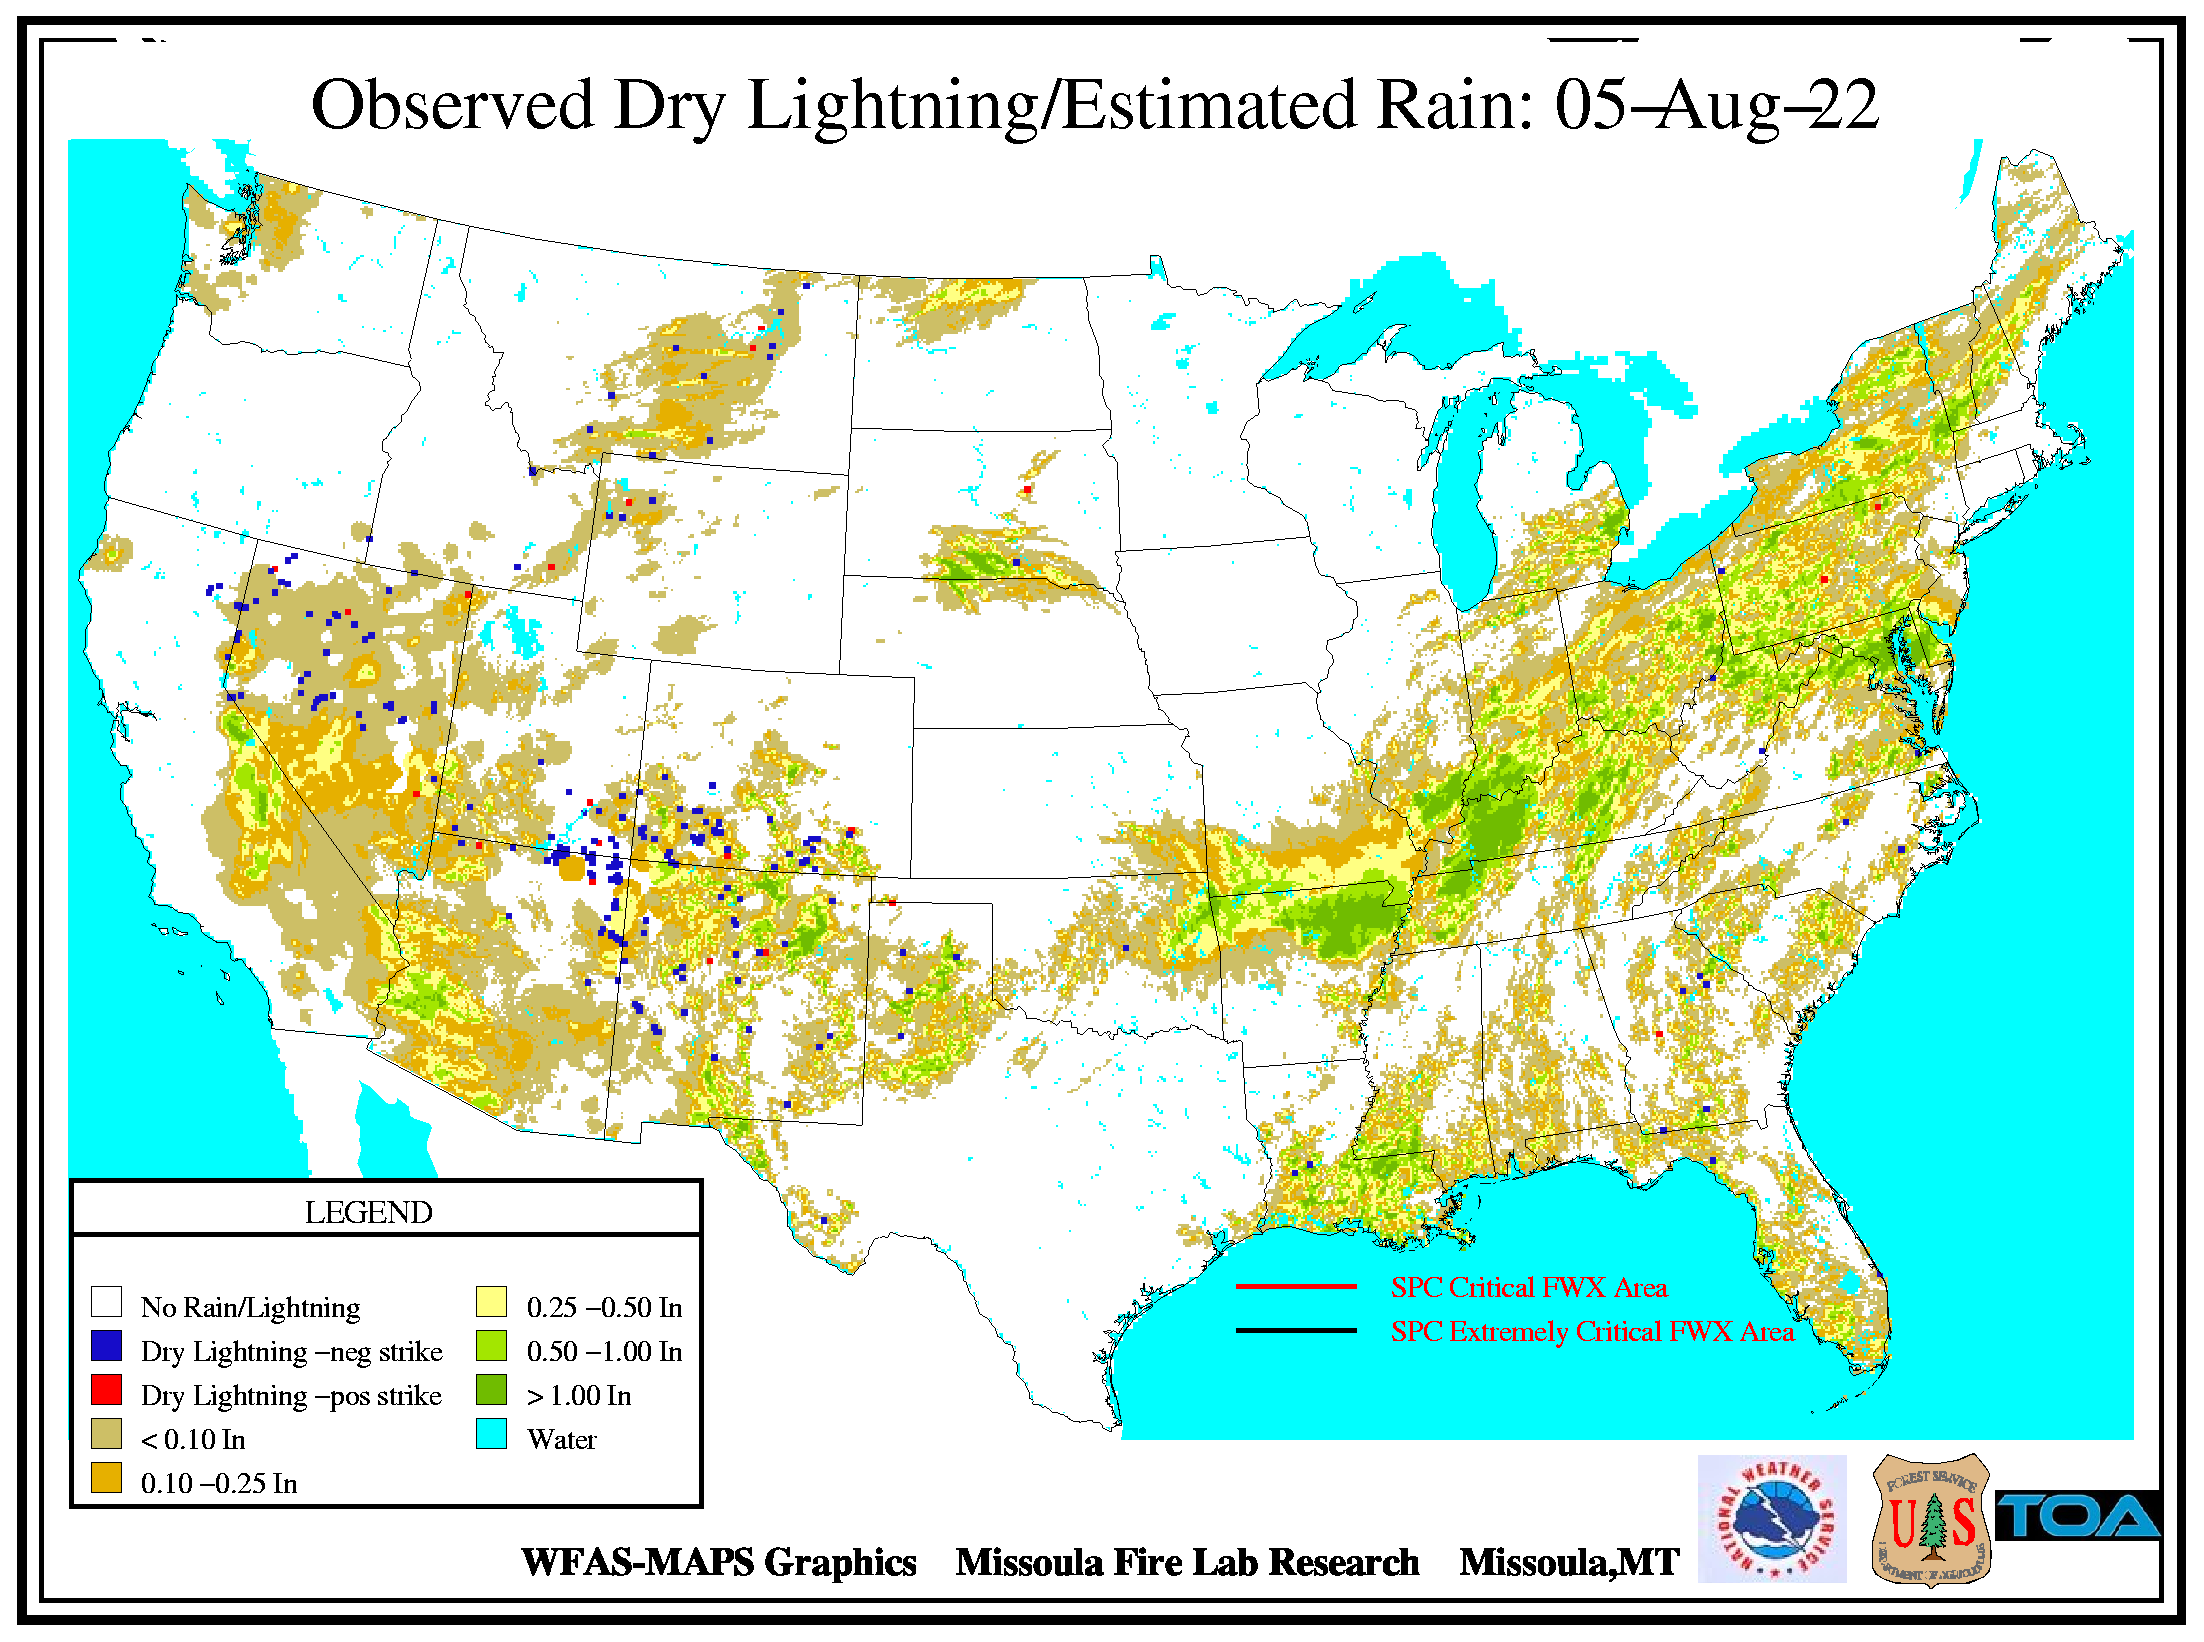 Observed dry lightning map for the continental U.S. Dry lightning is a major cause of wildfires.